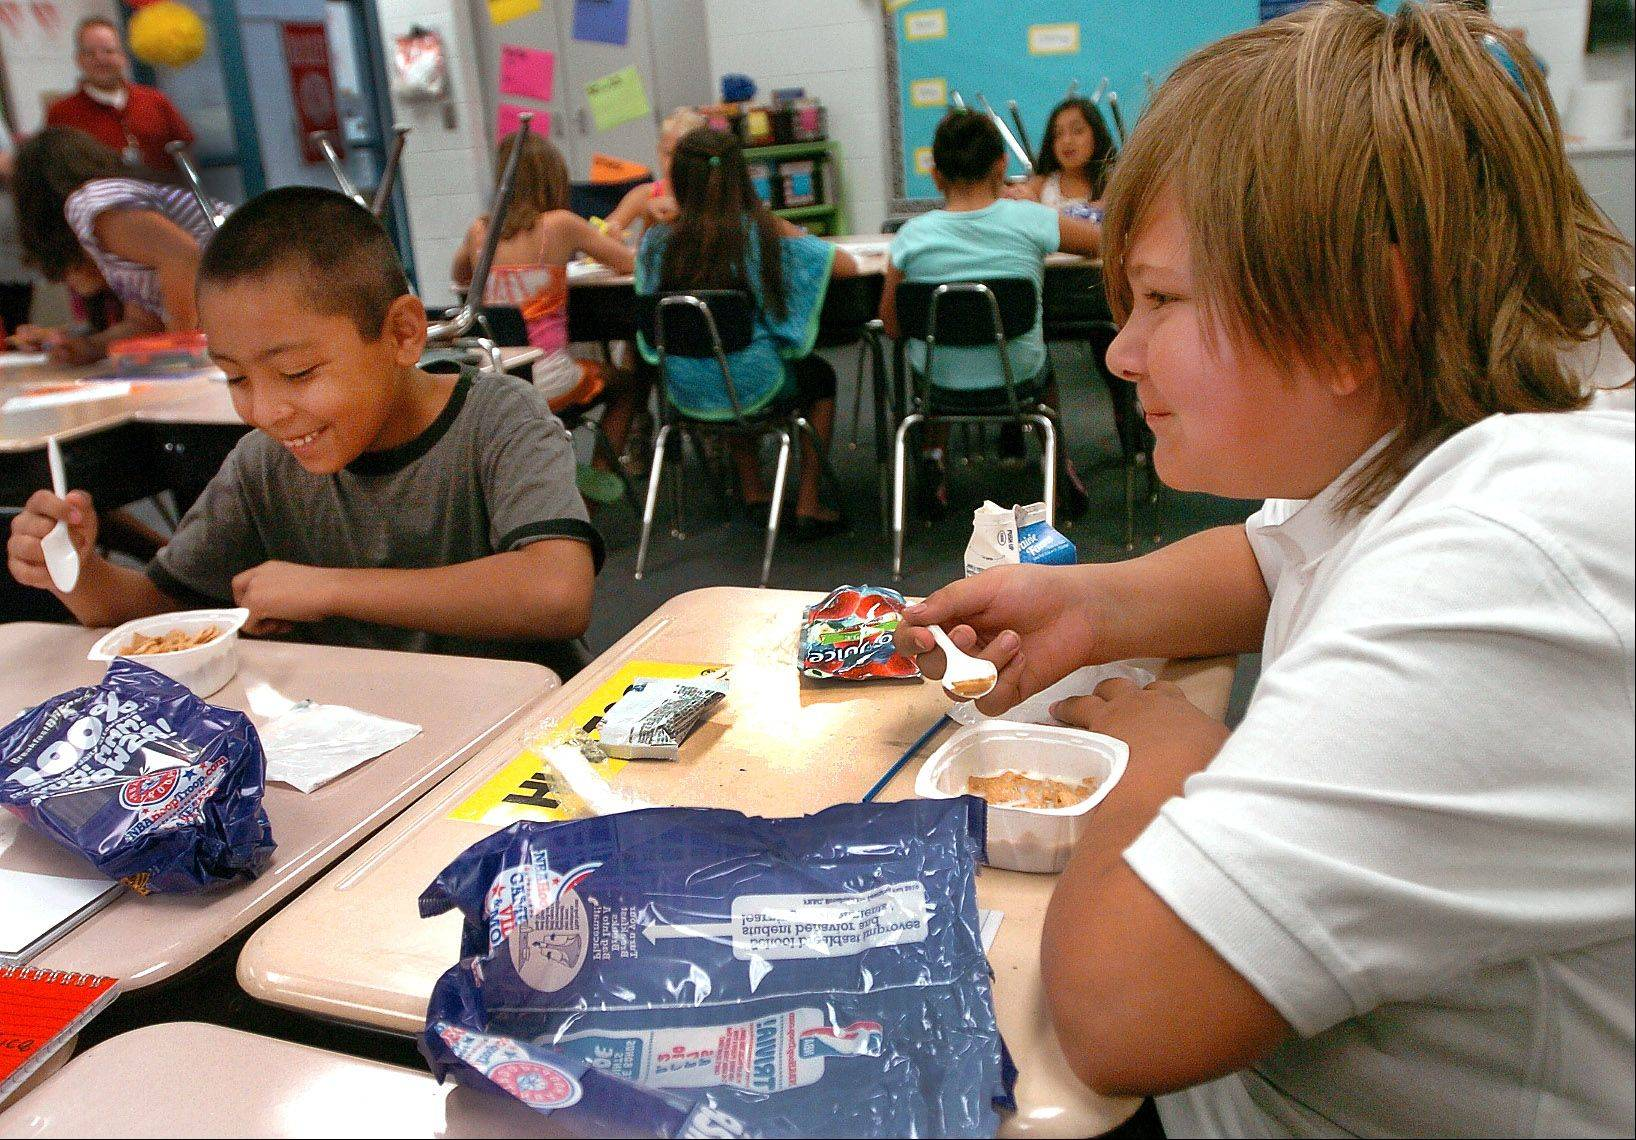 Hunter Watson, right, and Victor Lizardo, have breakfast at their desks at Jane Addams Elementary School in Palatine as part of the new universal free breakfast program.